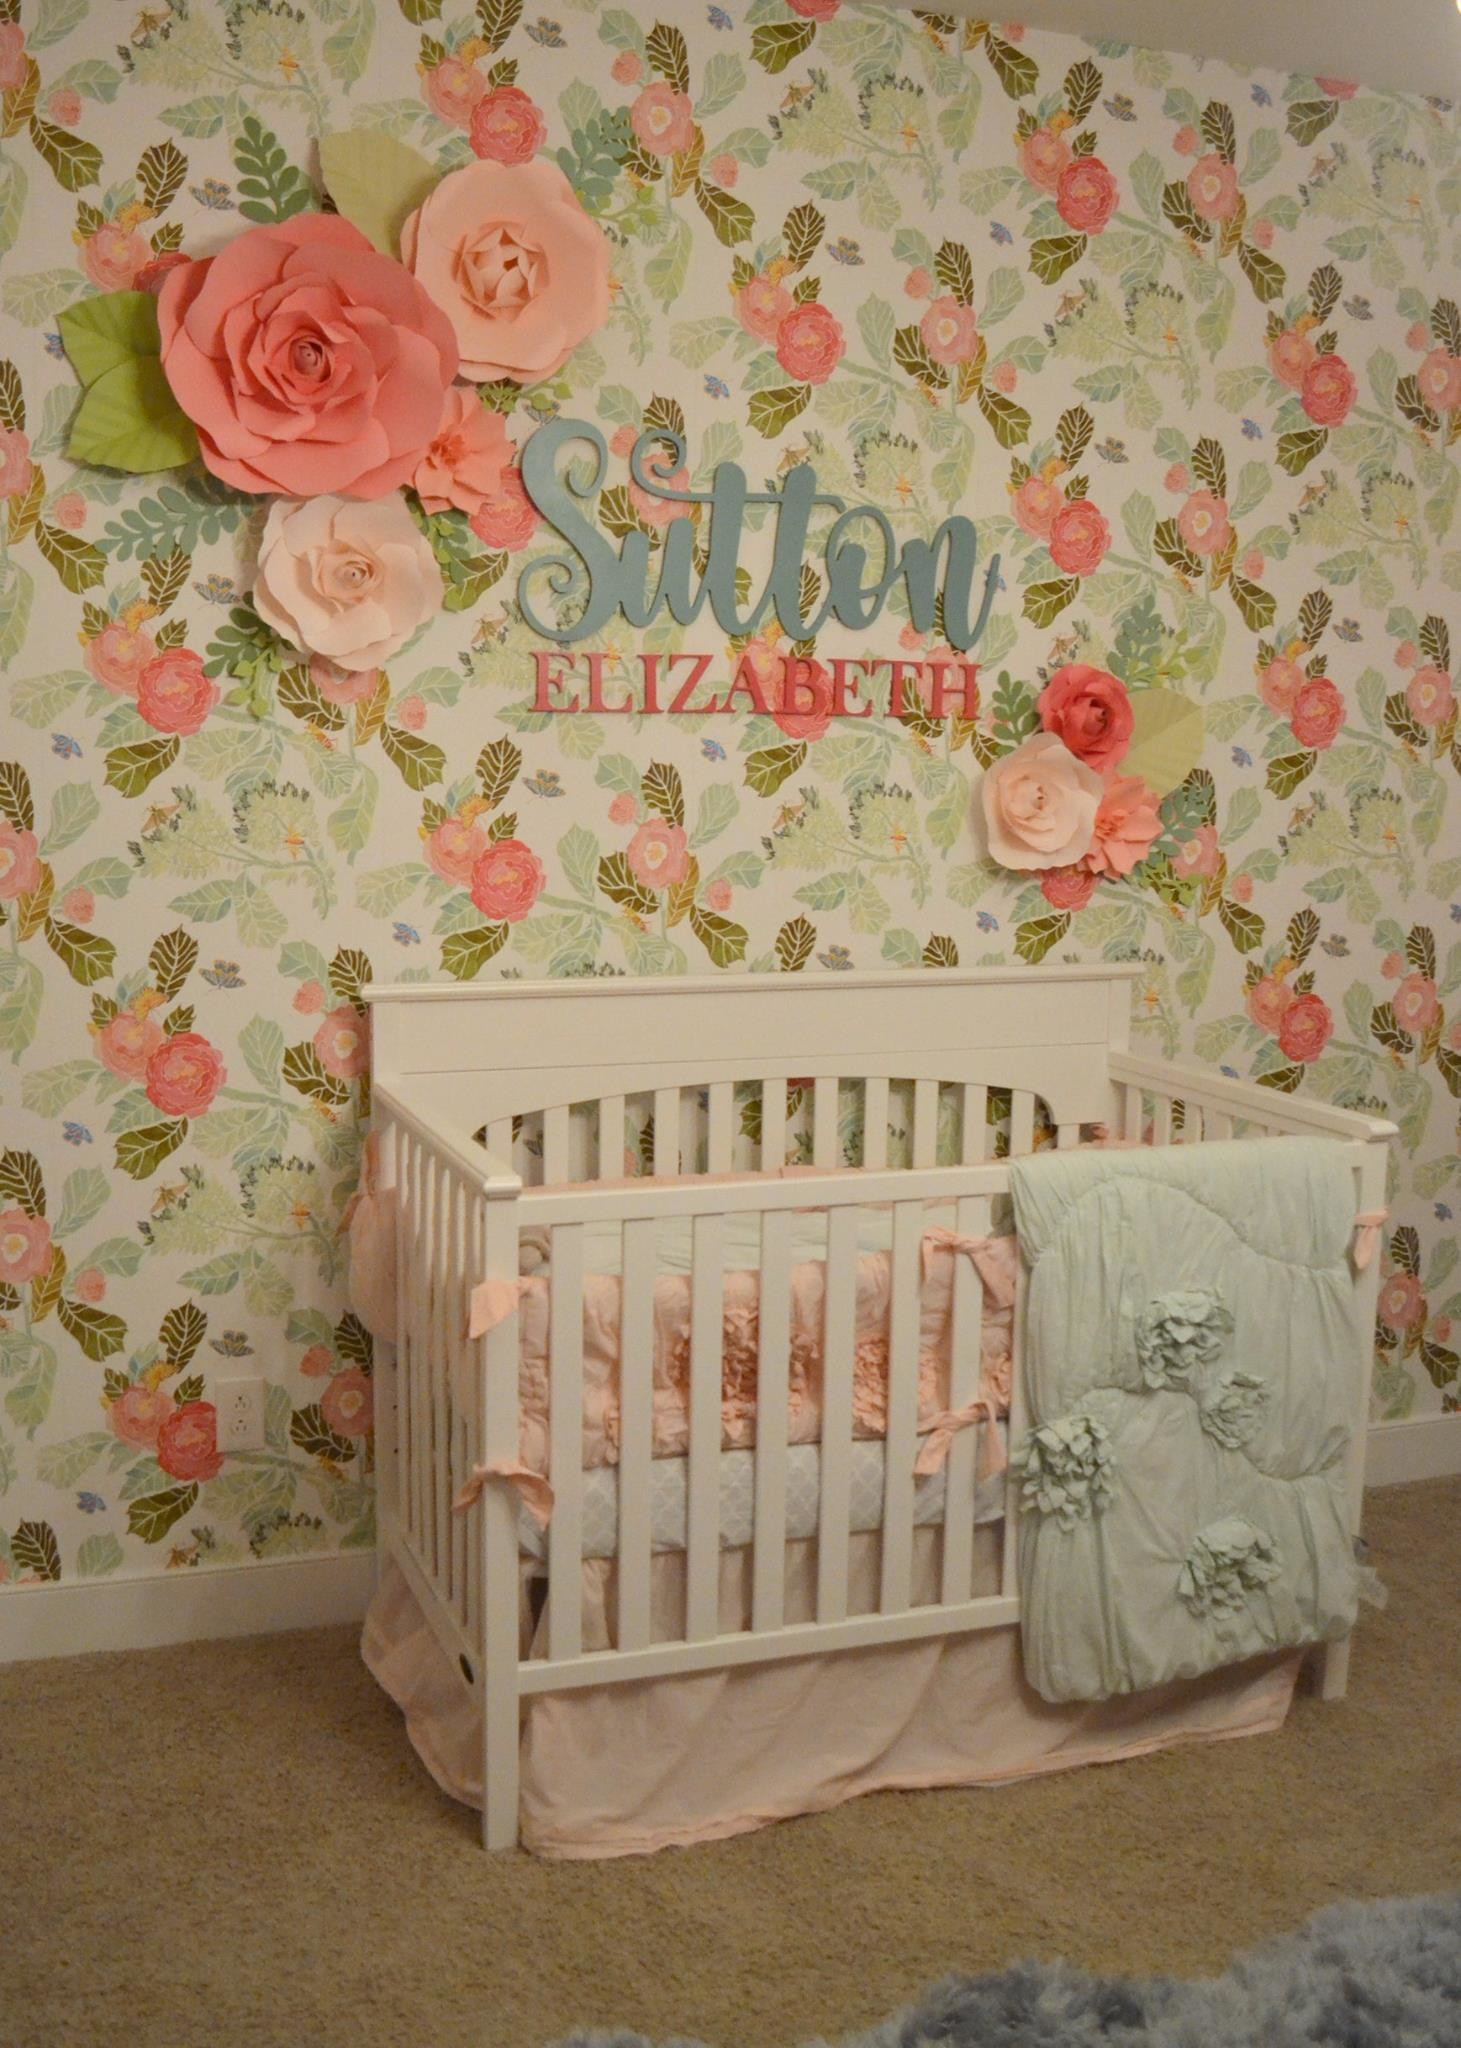 How much are you swooning over this floral nursery wallpaper? It's gorgeous  in a vintage